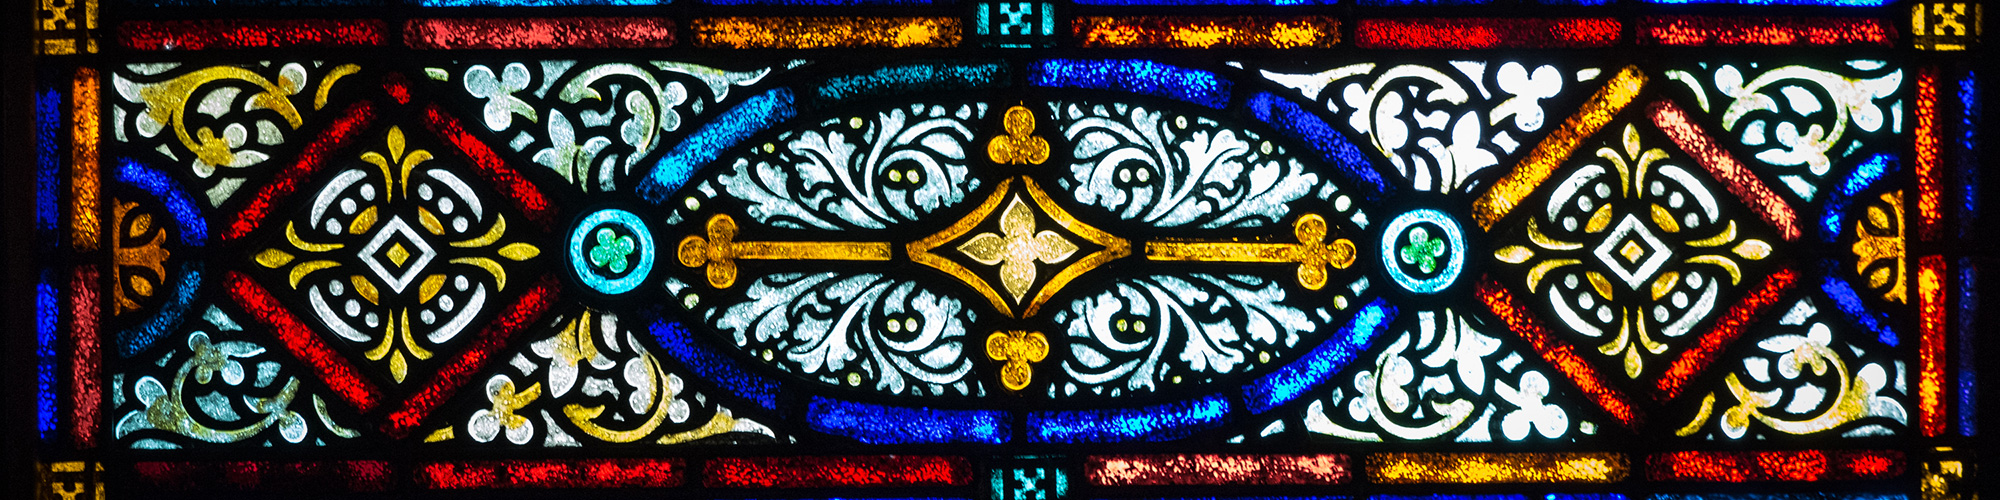 Mount Olive Church Stained Glass Windows